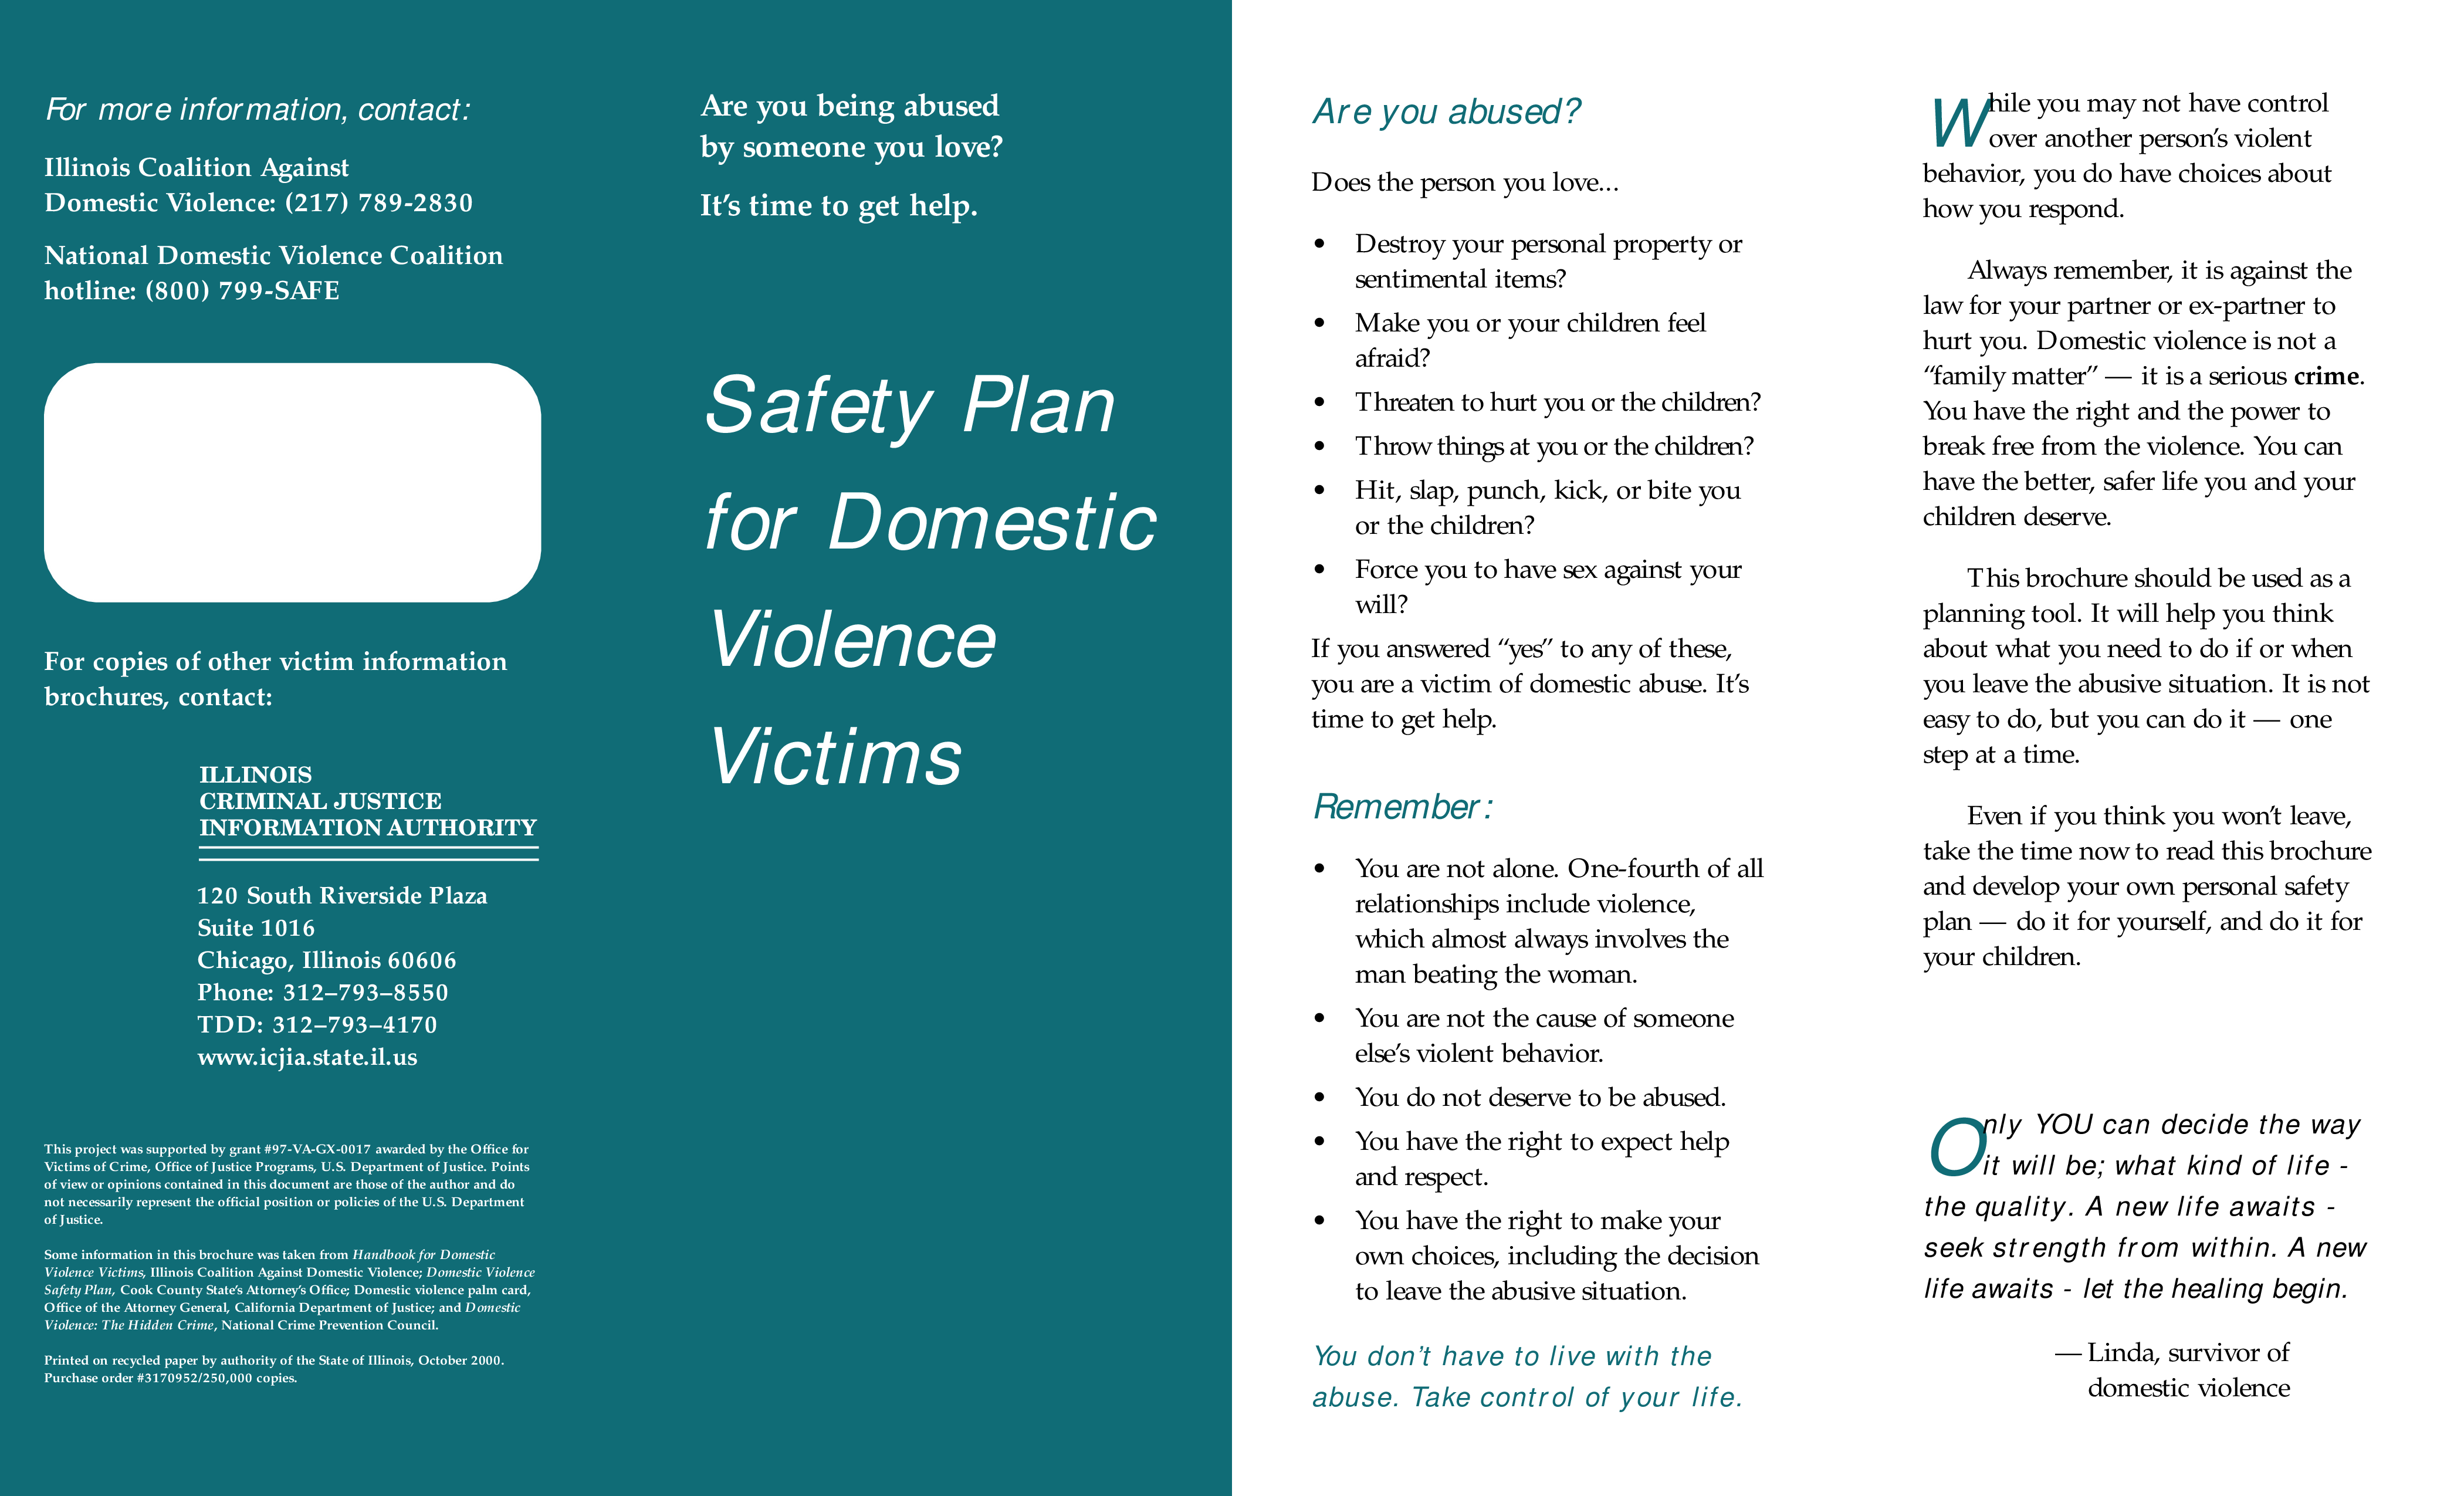 Free Domestic Violence Safety Plan Brochure | Templates at ...